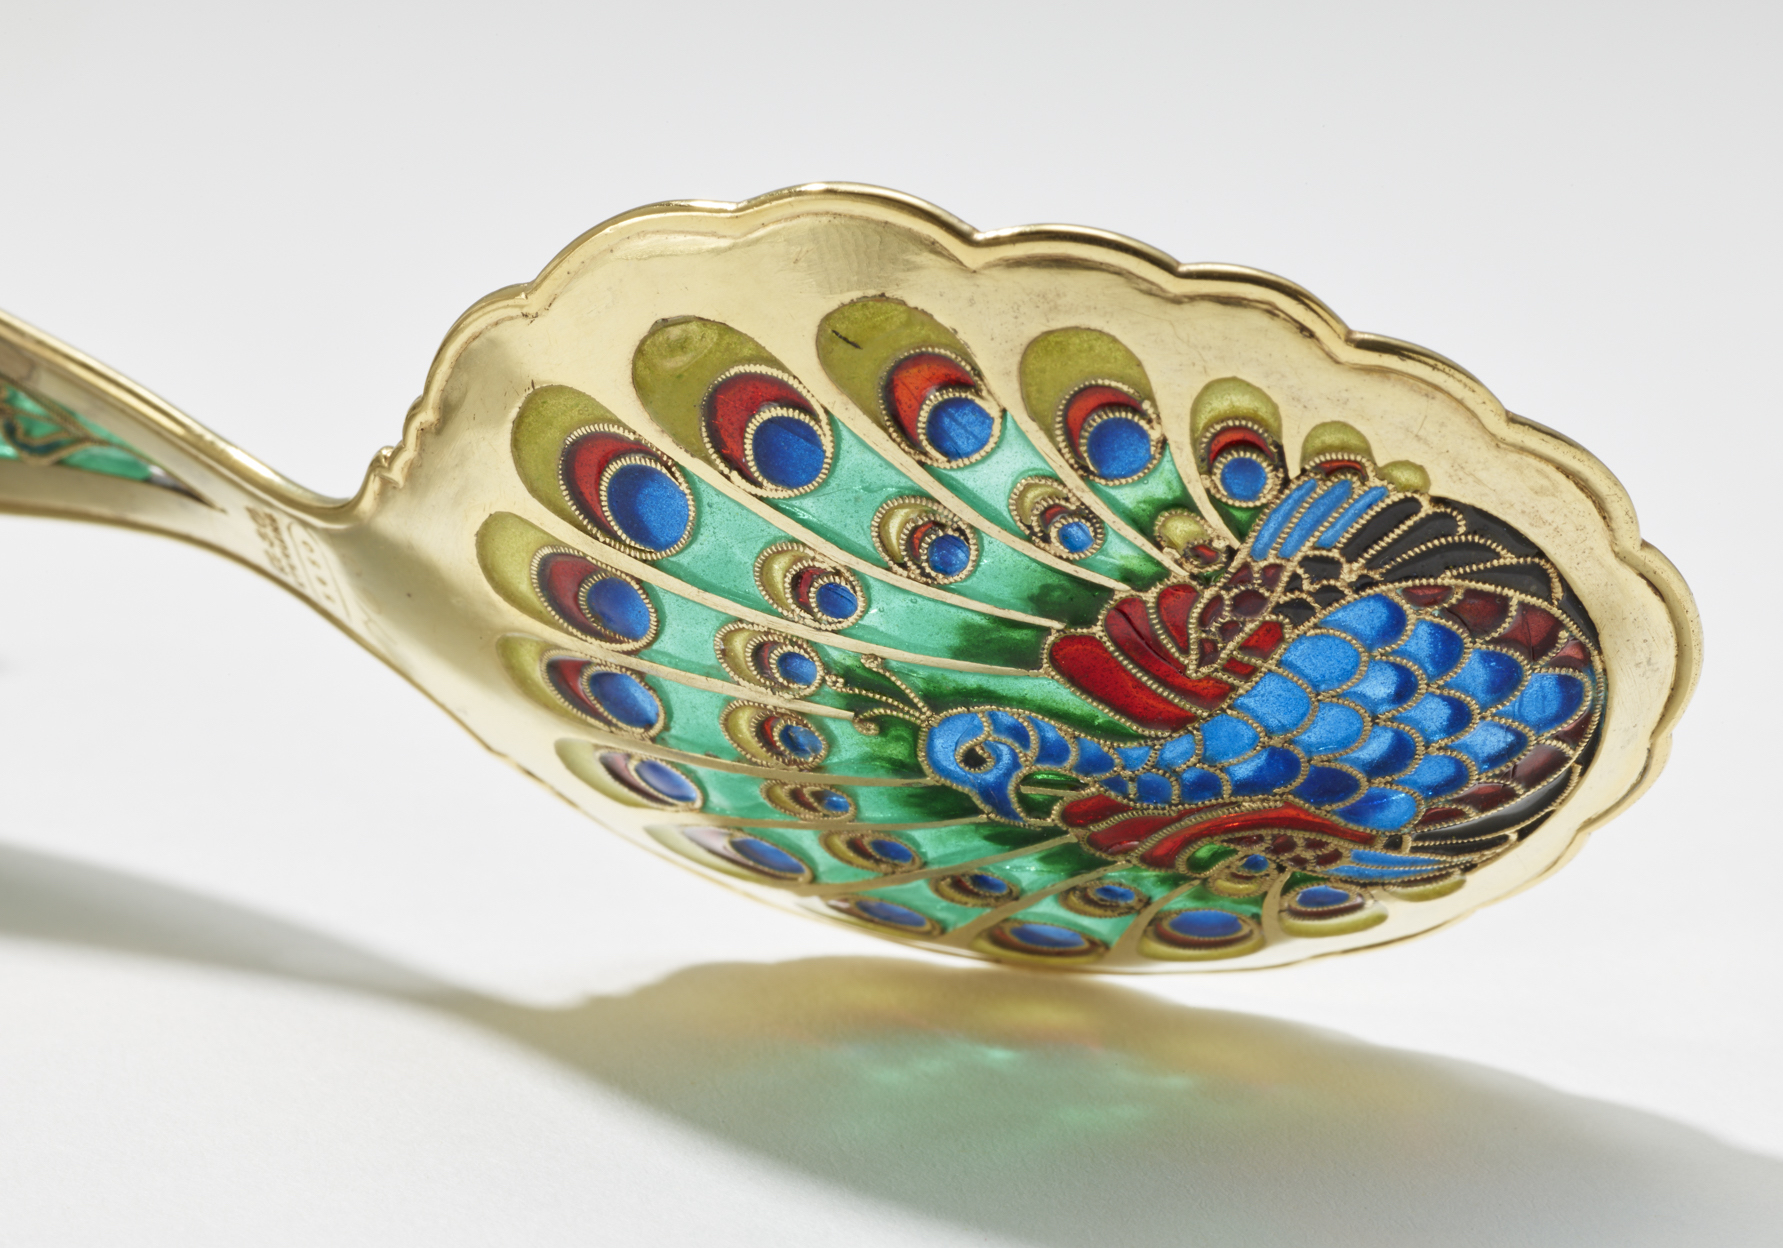 Gorham Manufacturing Company, Bonbon Spoon (detail), ca. 1893. Silver with gilding and plique-à-jour enamel. Anonymous gift. RISD Museum, Providence, RI.